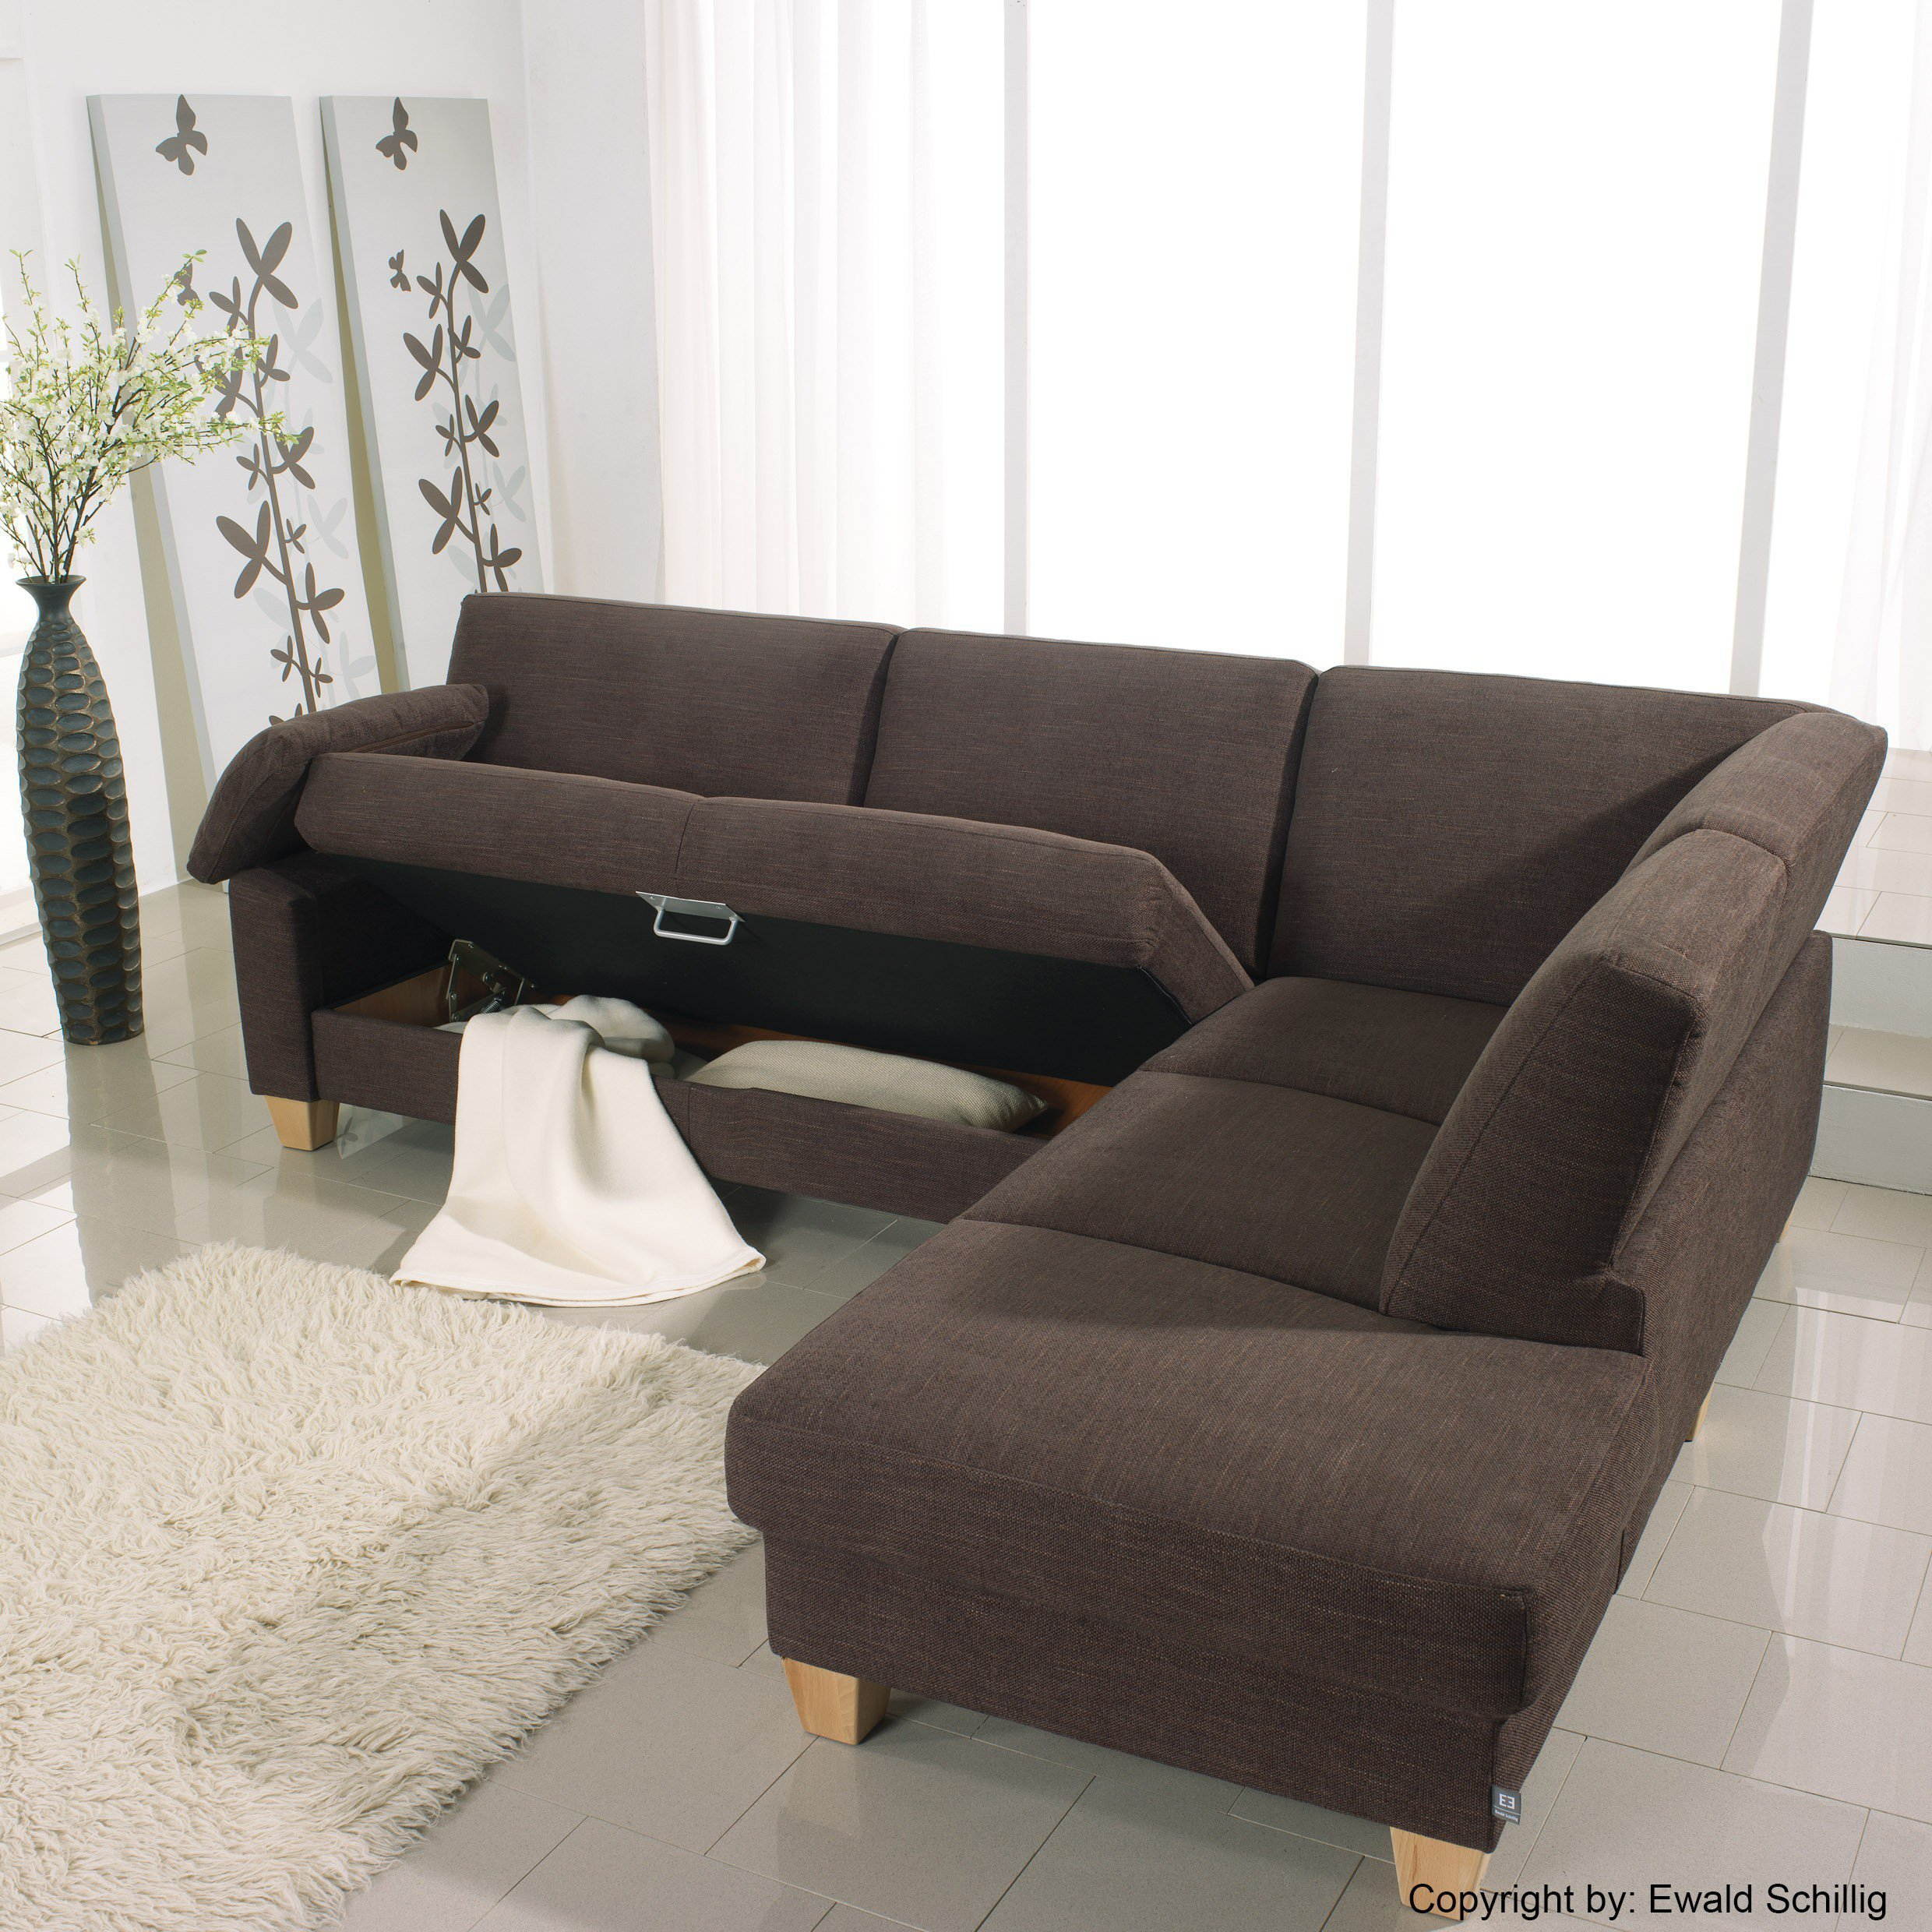 ewald schillig sofa erfahrungen ewald schillig sofa kaufen with ewald schillig sofa erfahrungen. Black Bedroom Furniture Sets. Home Design Ideas